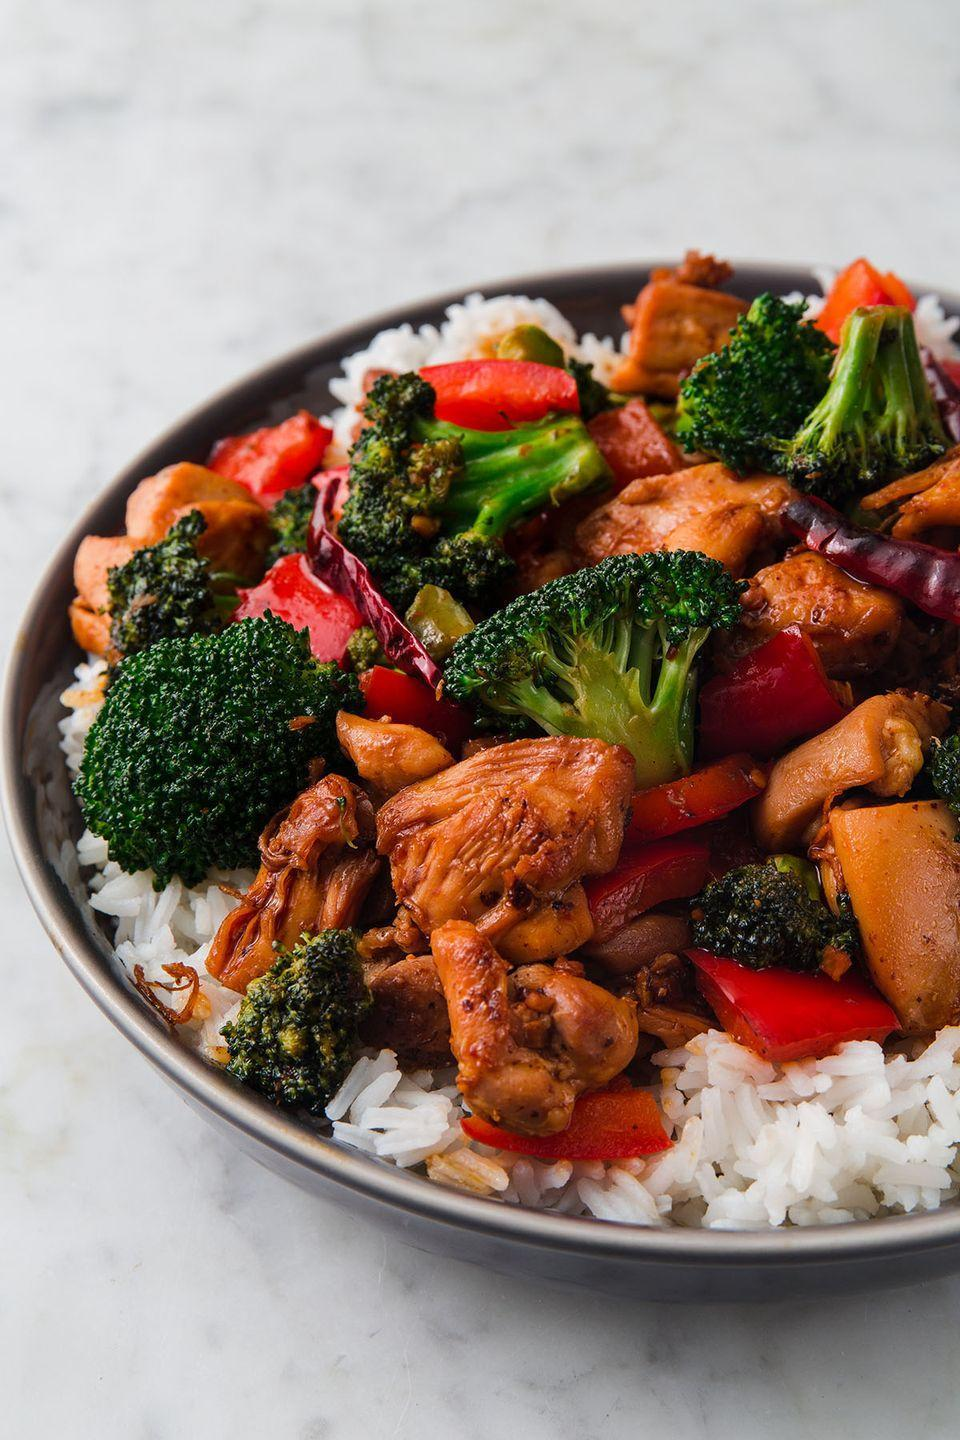 "<p>Chick with a kick. </p><p>Get the recipe from <a href=""https://www.delish.com/cooking/recipe-ideas/a22108351/hunan-chicken-recipe/"" rel=""nofollow noopener"" target=""_blank"" data-ylk=""slk:Delish."" class=""link rapid-noclick-resp"">Delish.</a></p>"